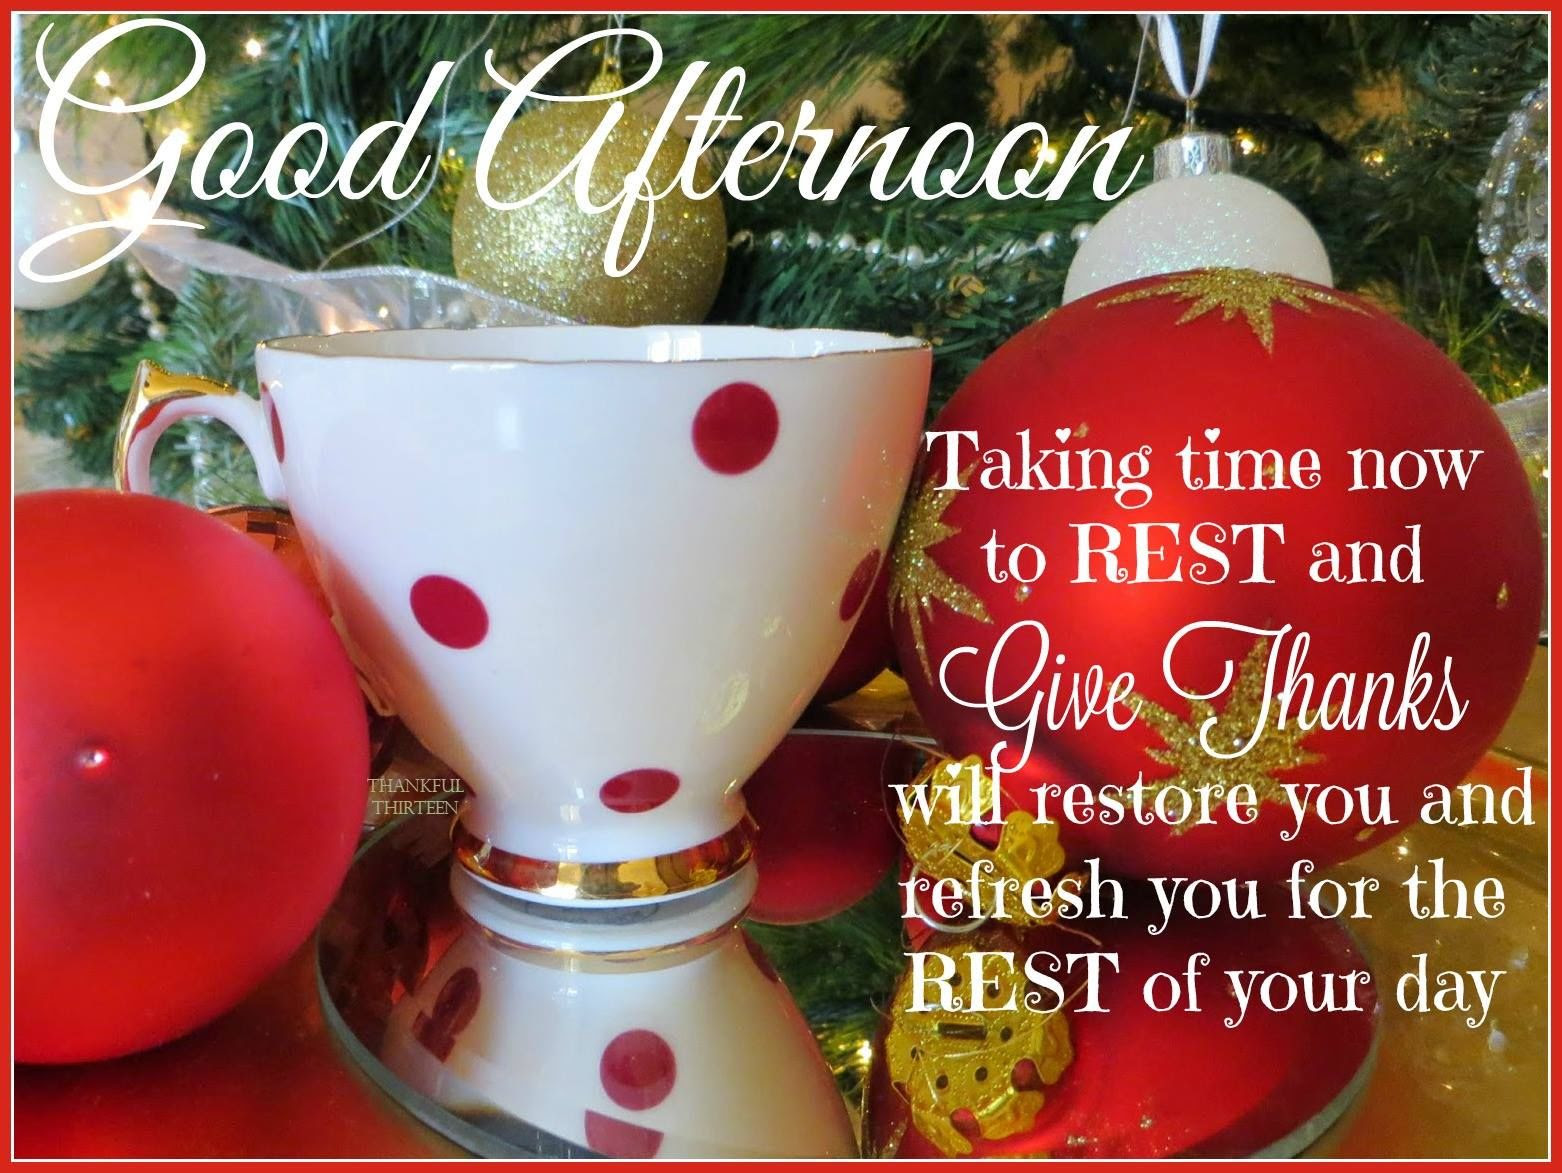 Christmas Good Afternoon Quote Pictures Photos And Images For